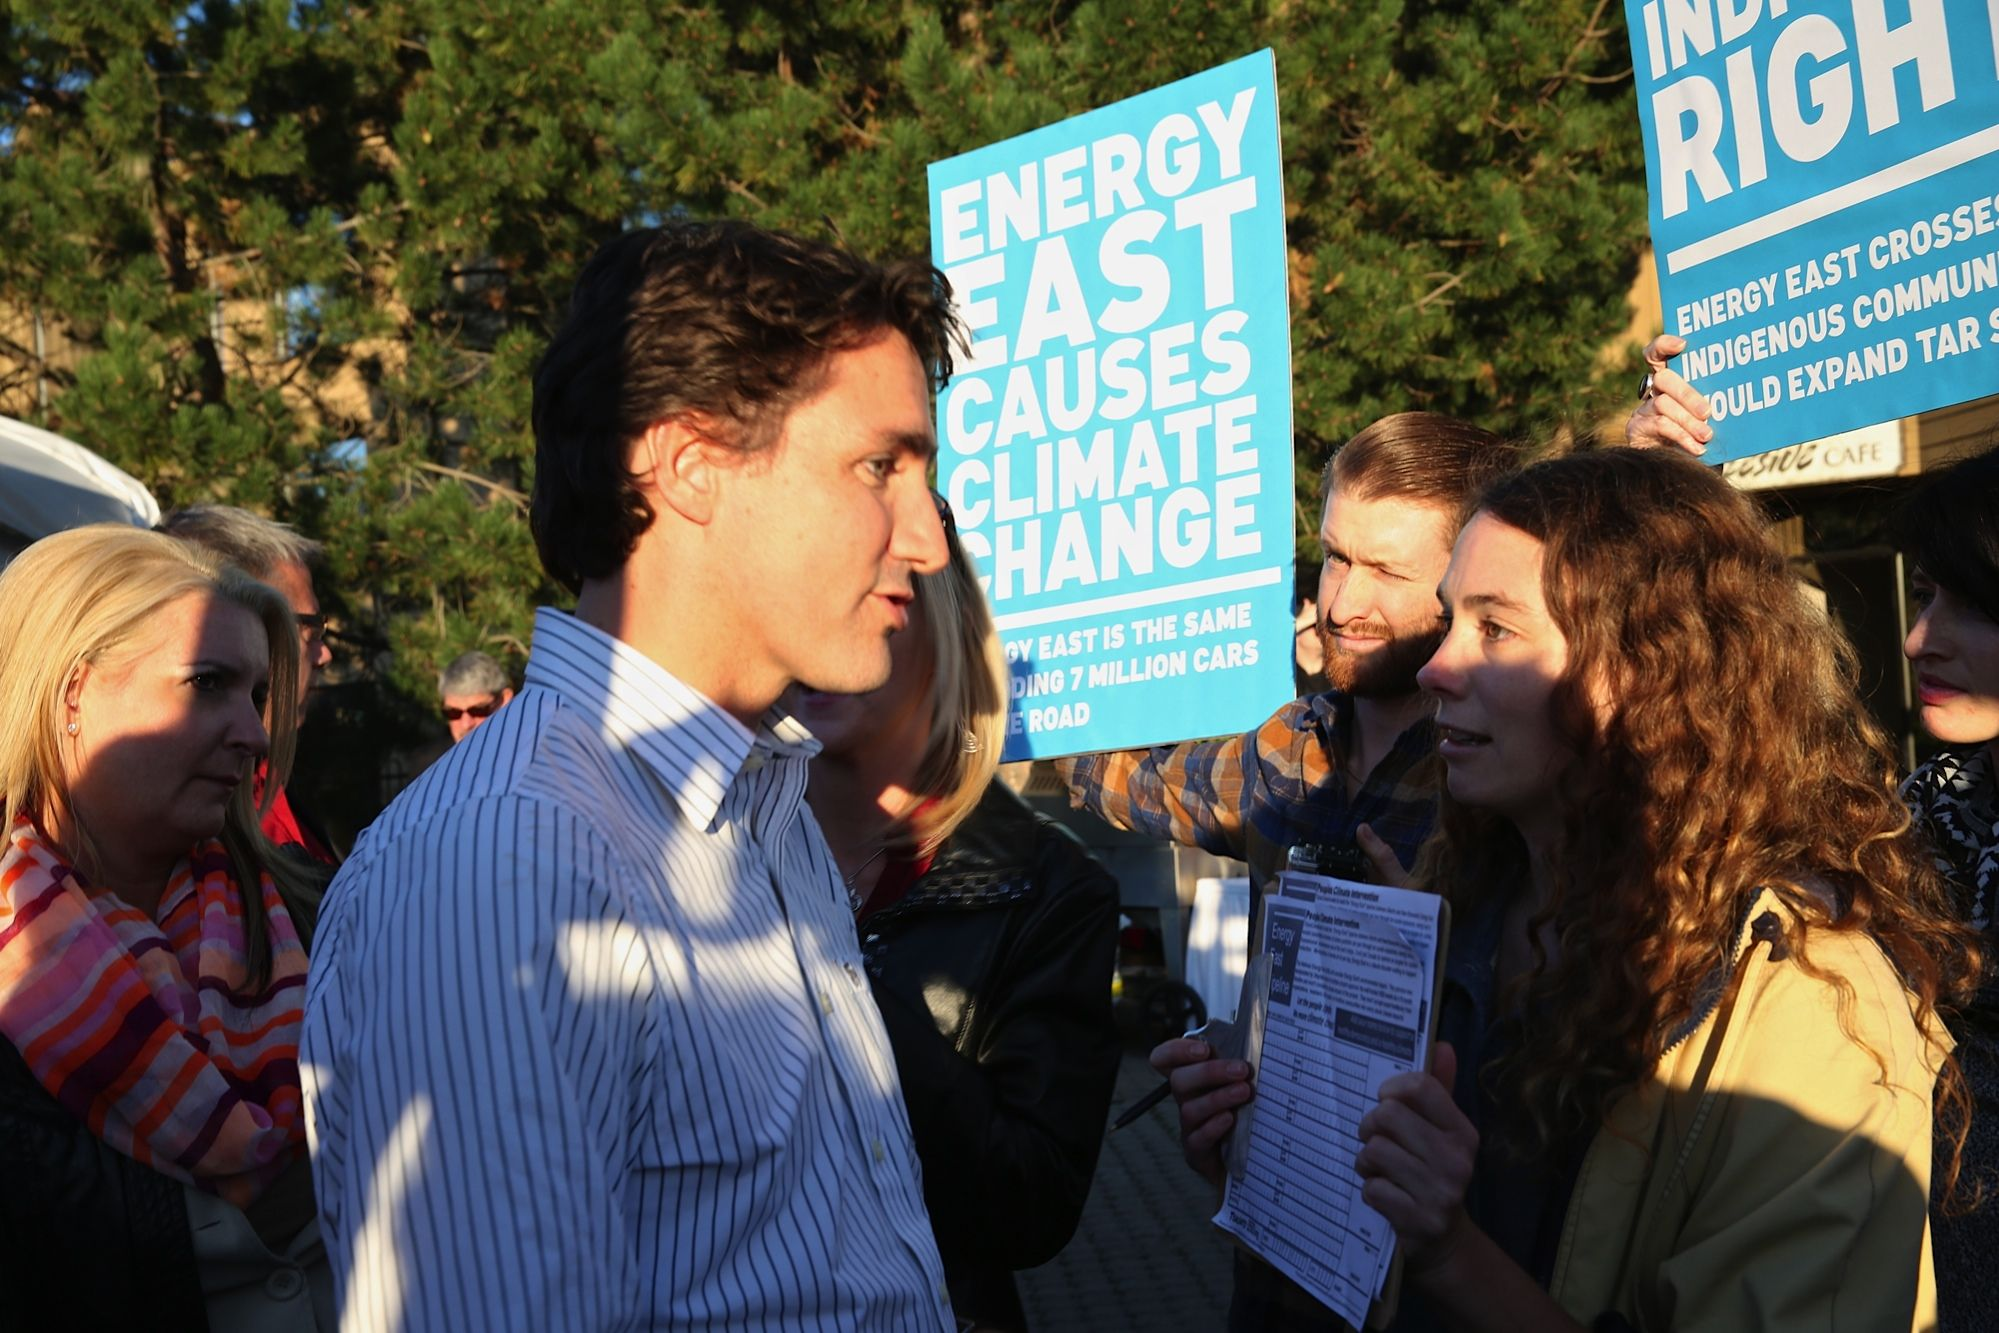 To350 member, Katie Krelove asks Trudeau to sign a petition for climate impacts to be part of NEB's assessment of the Energy East pipeline